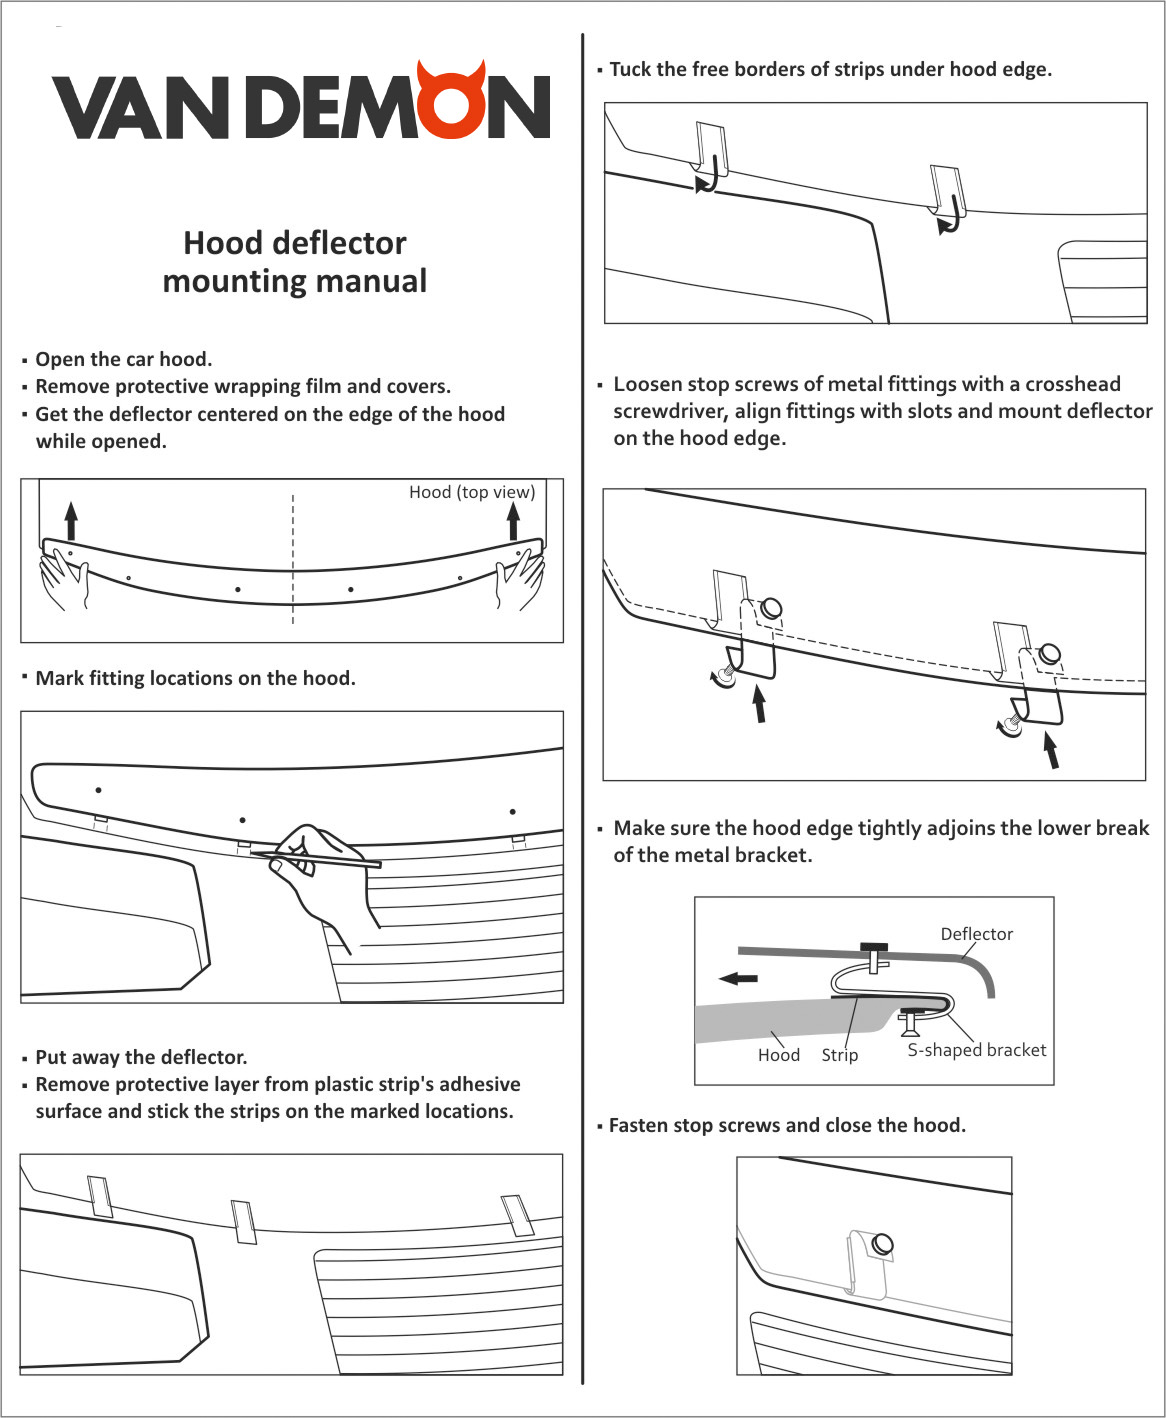 Bonnet Guard fitting instructions